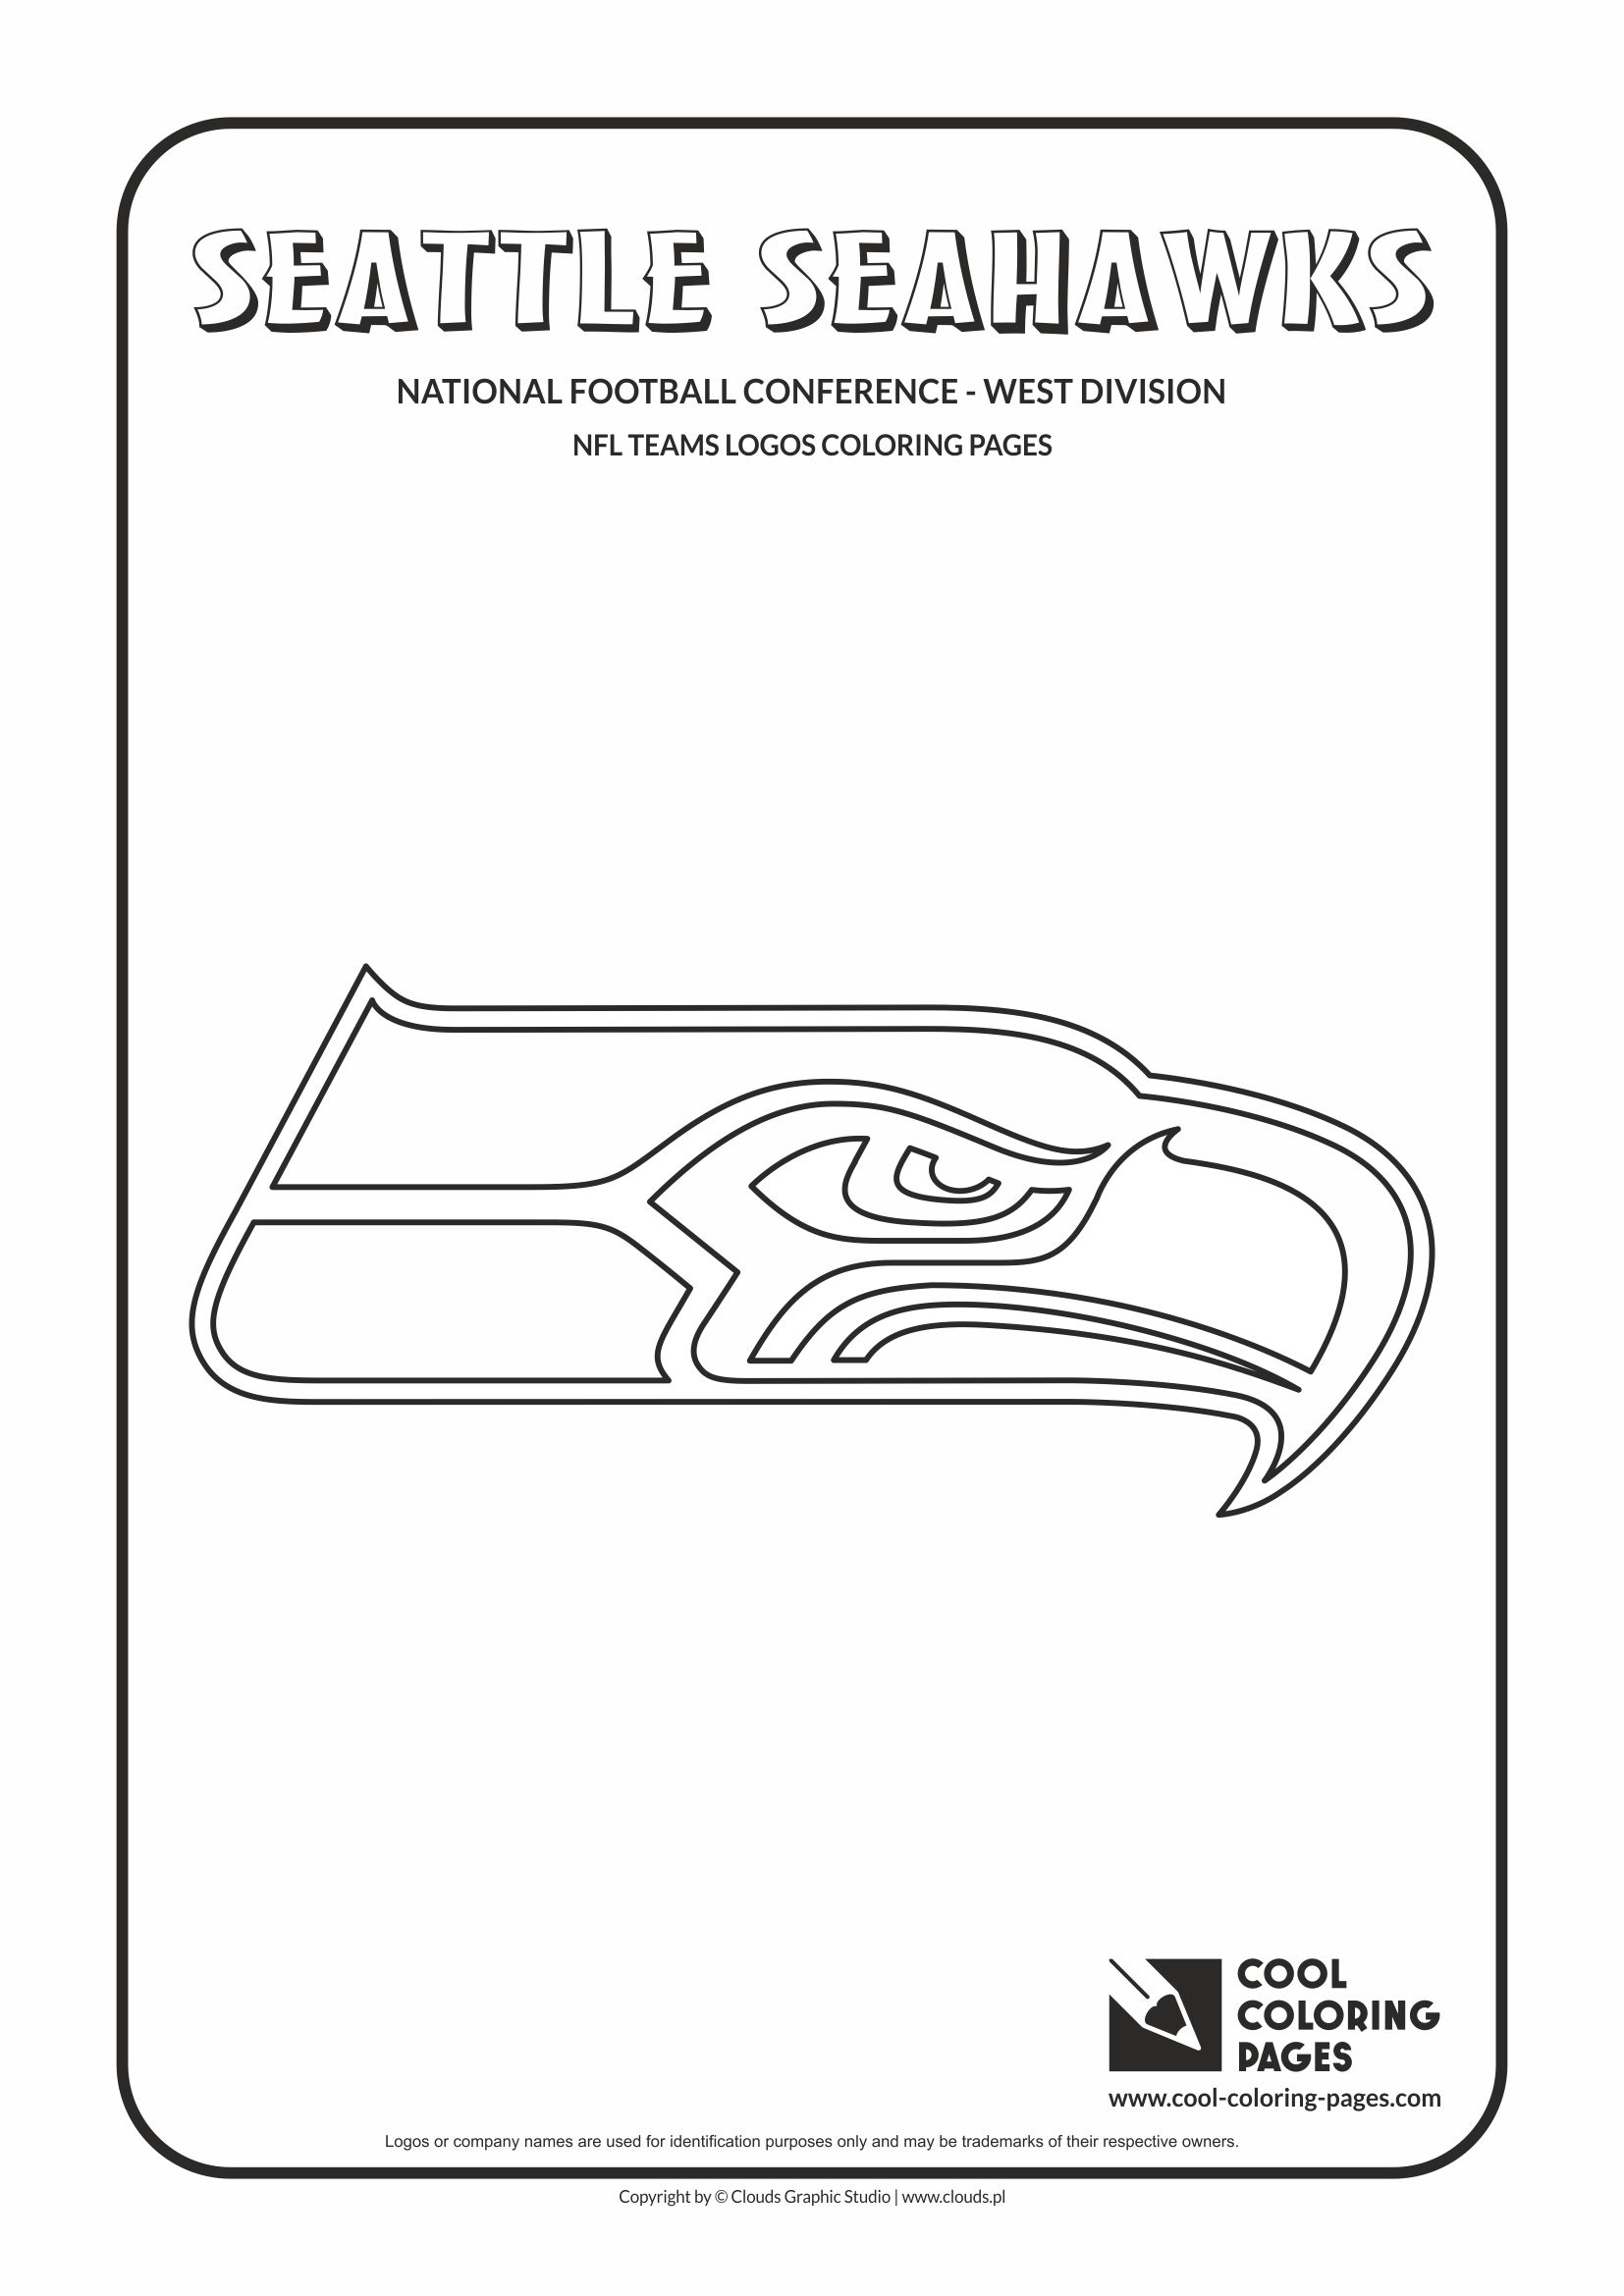 Cool Coloring Pages - NFL American Football Clubs Logos - National Football Conference - West Division / Seattle Seahawks logo / Coloring page with Seattle Seahawks logo